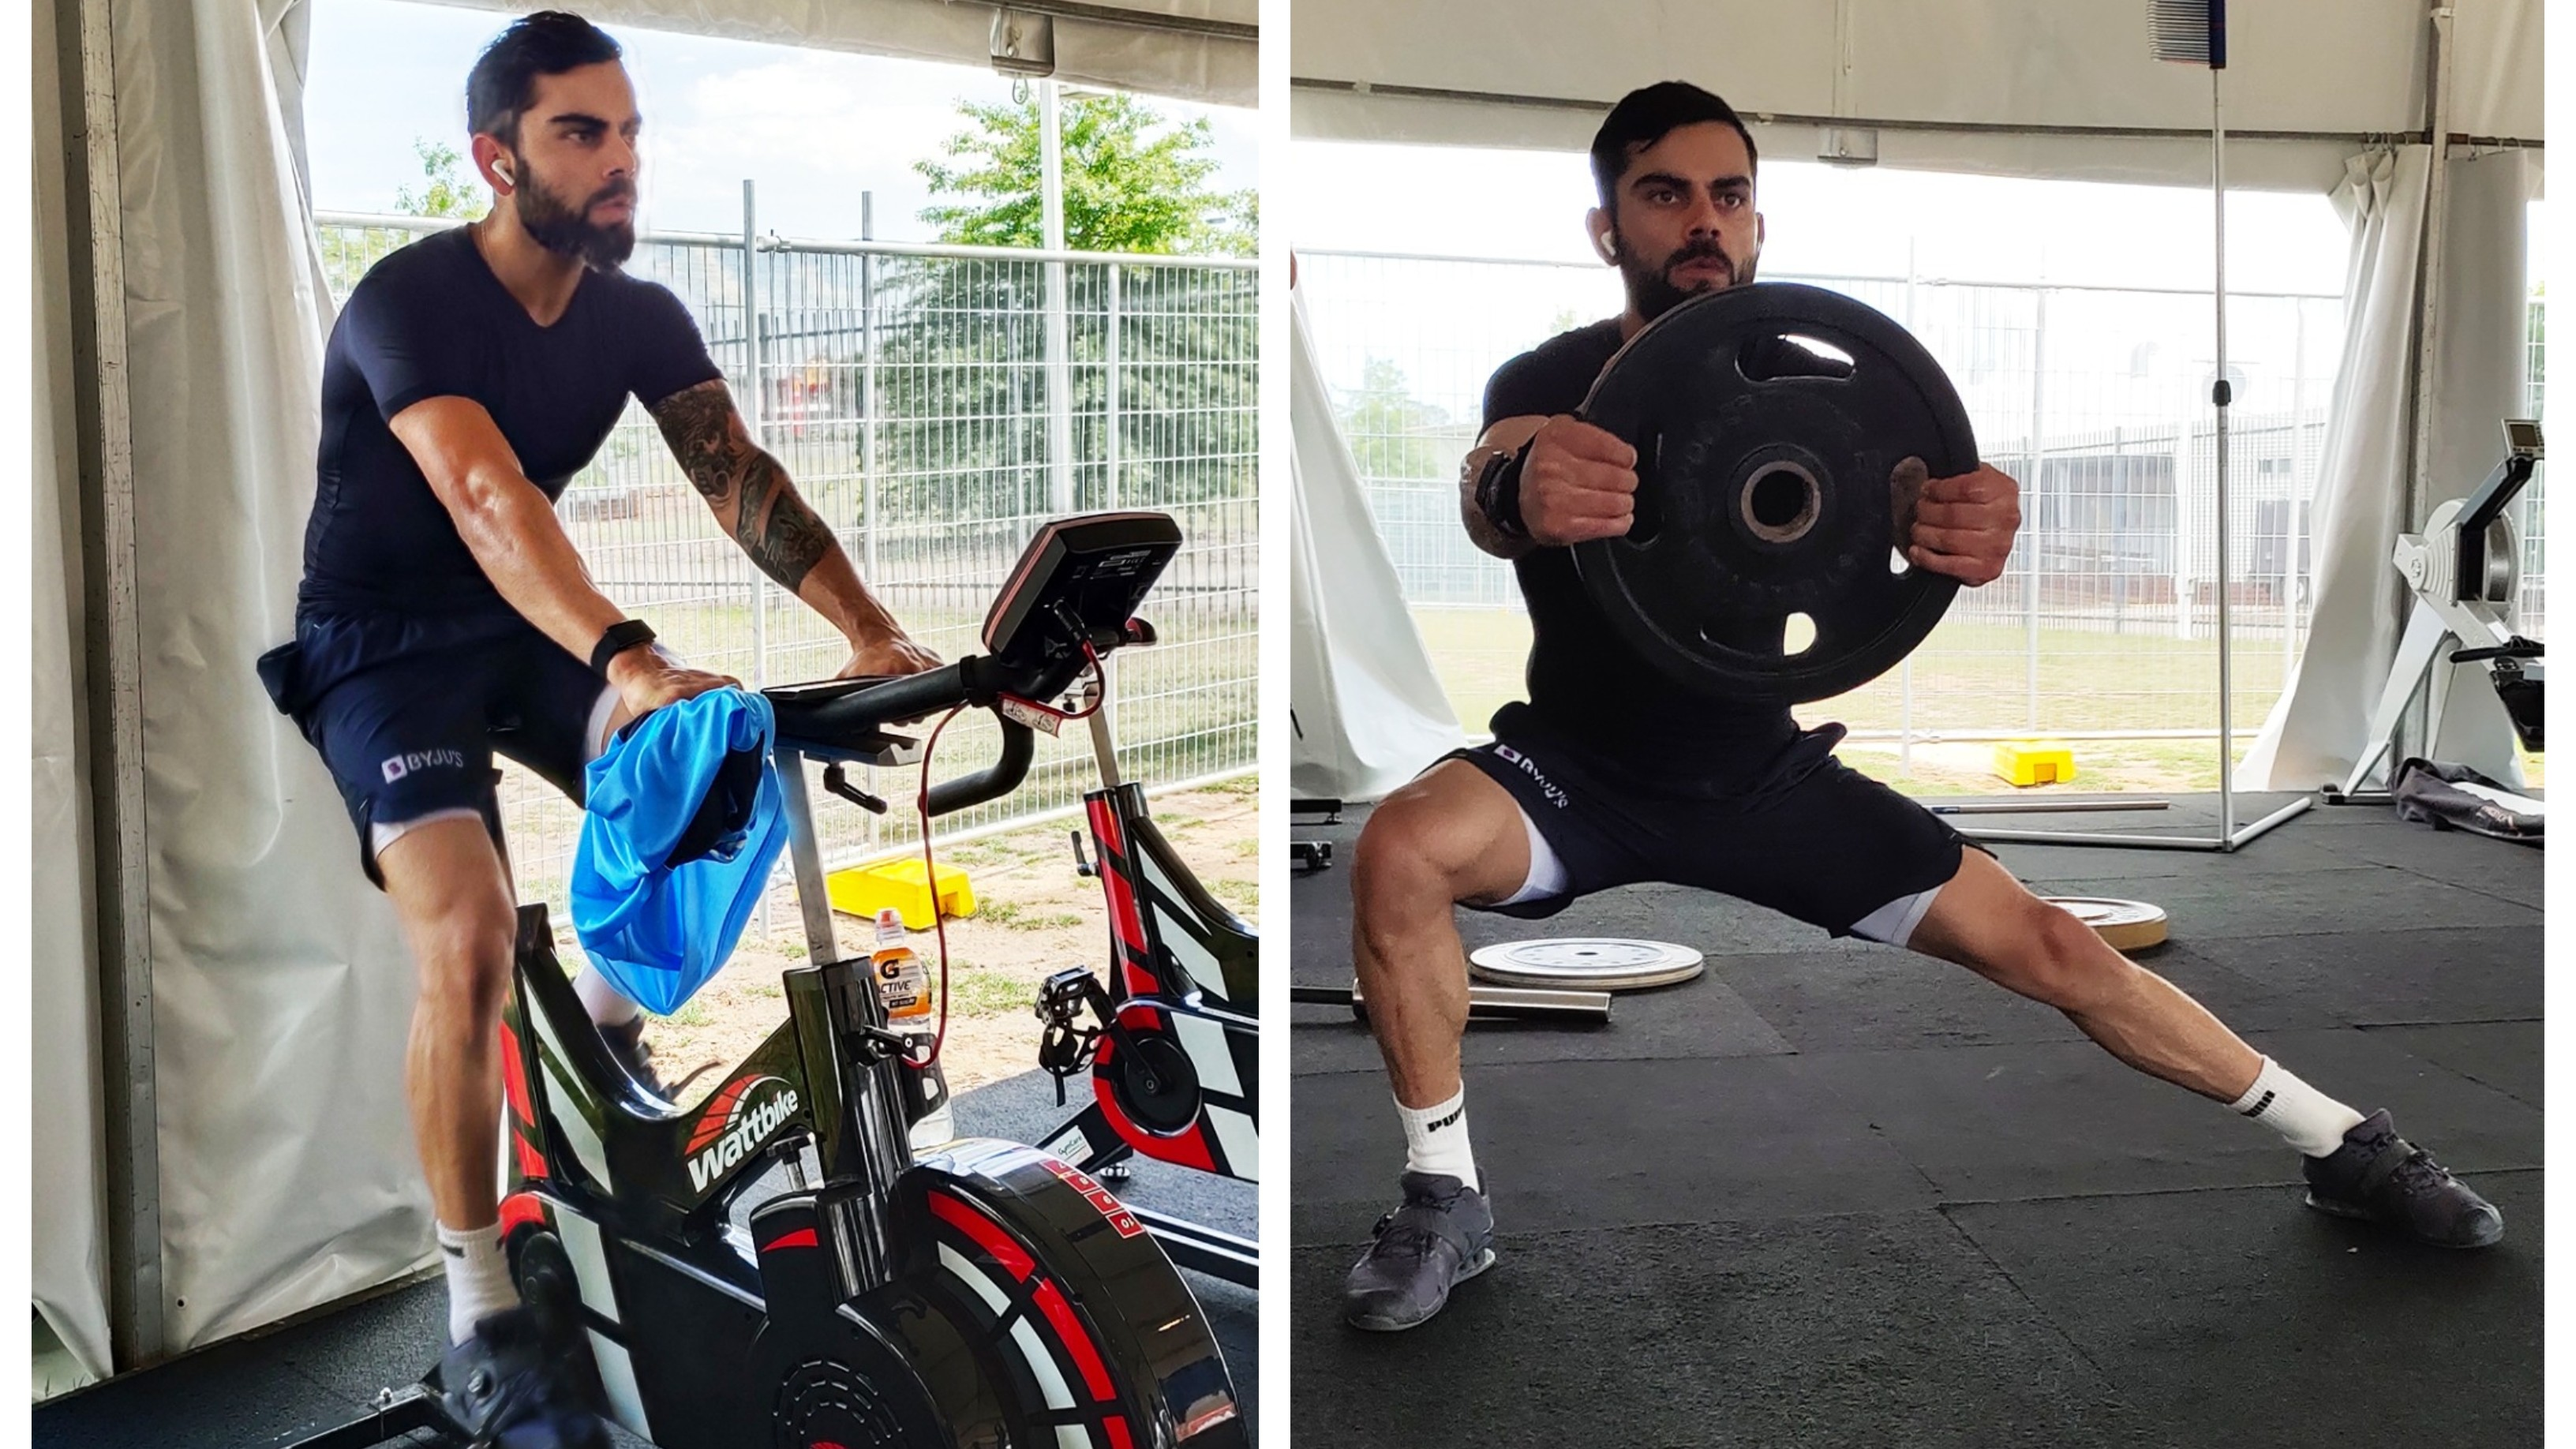 AUS v IND 2020-21: Virat Kohli shares pictures from intense gym workout session